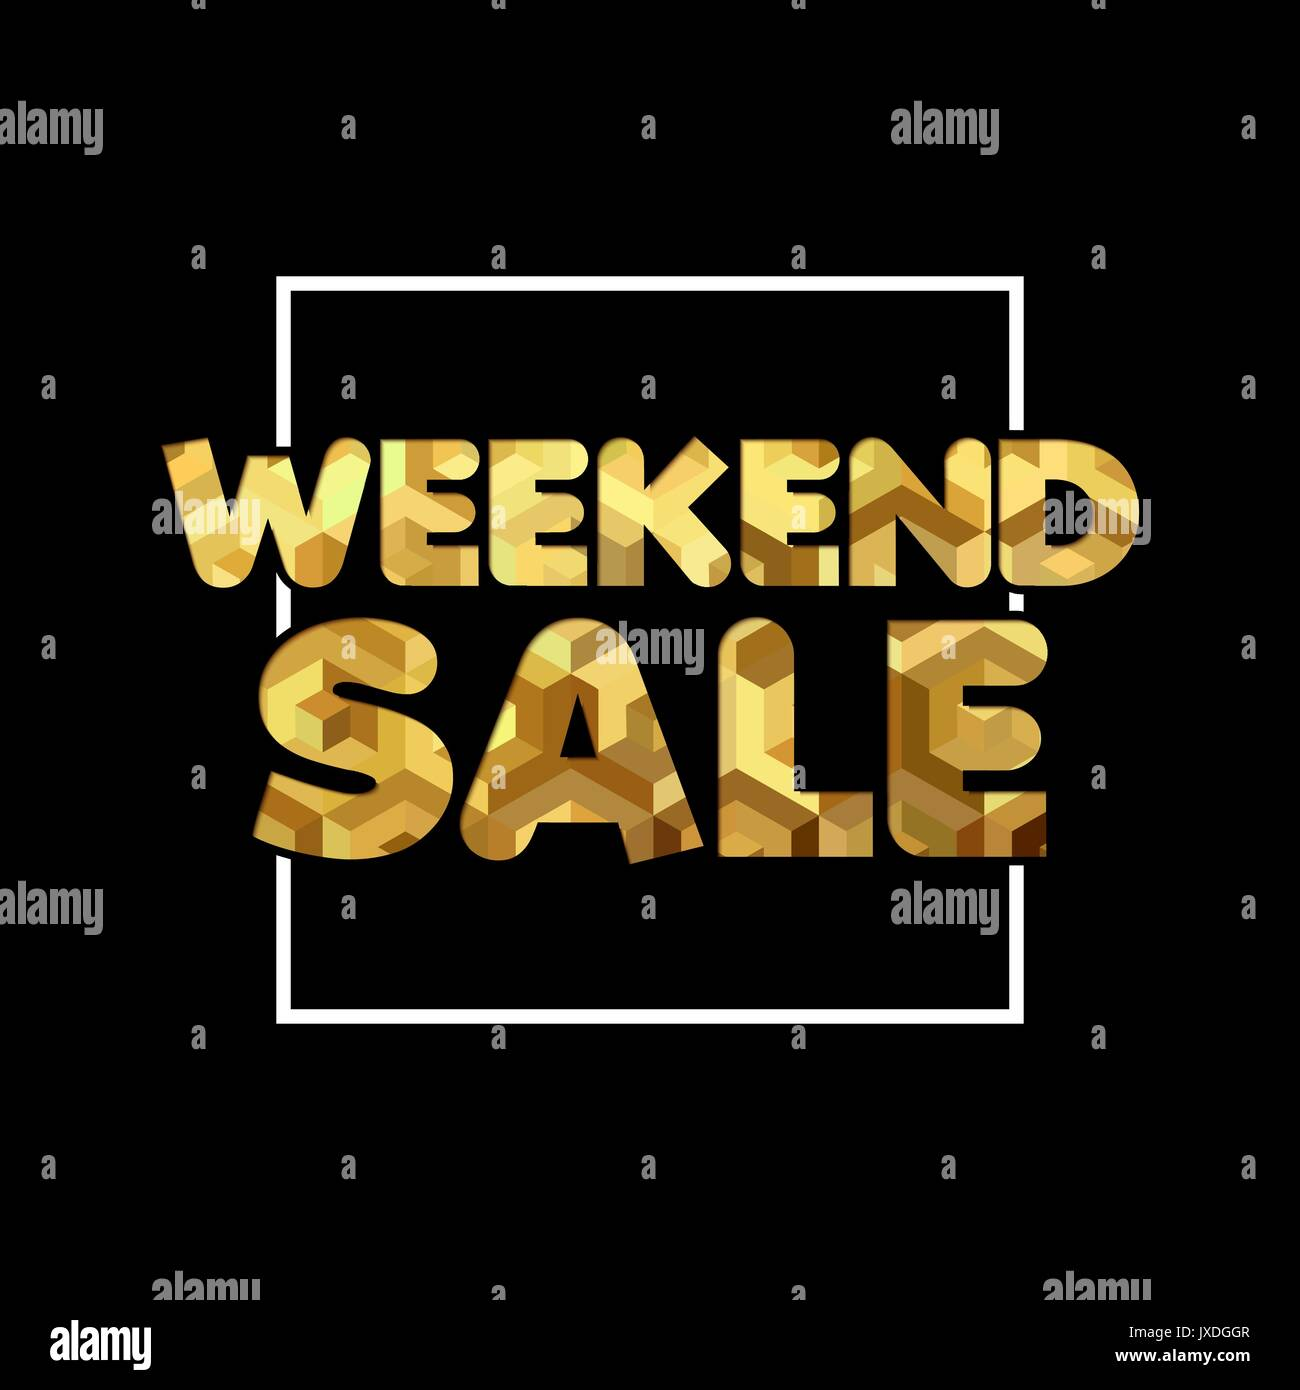 Weekend Discount: Weekend Sale Gold Quote For Special Offer Discount, Luxury